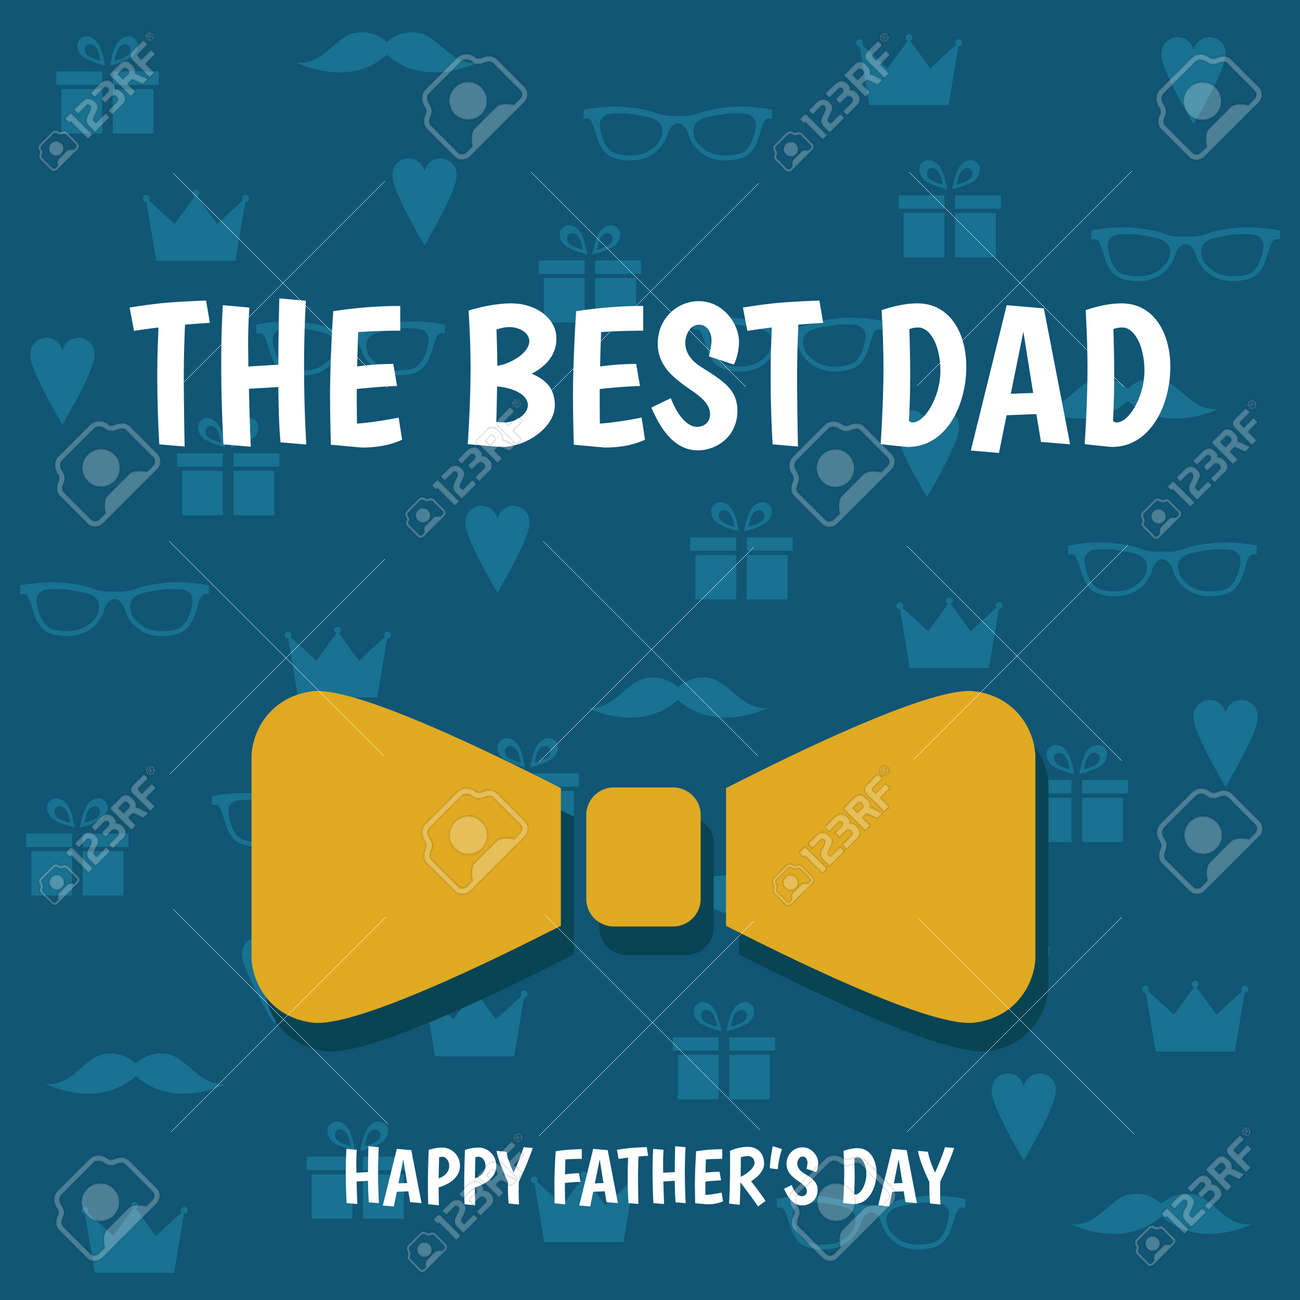 Happy Fathers Day Greeting Card With Bowtie On Blue Background The